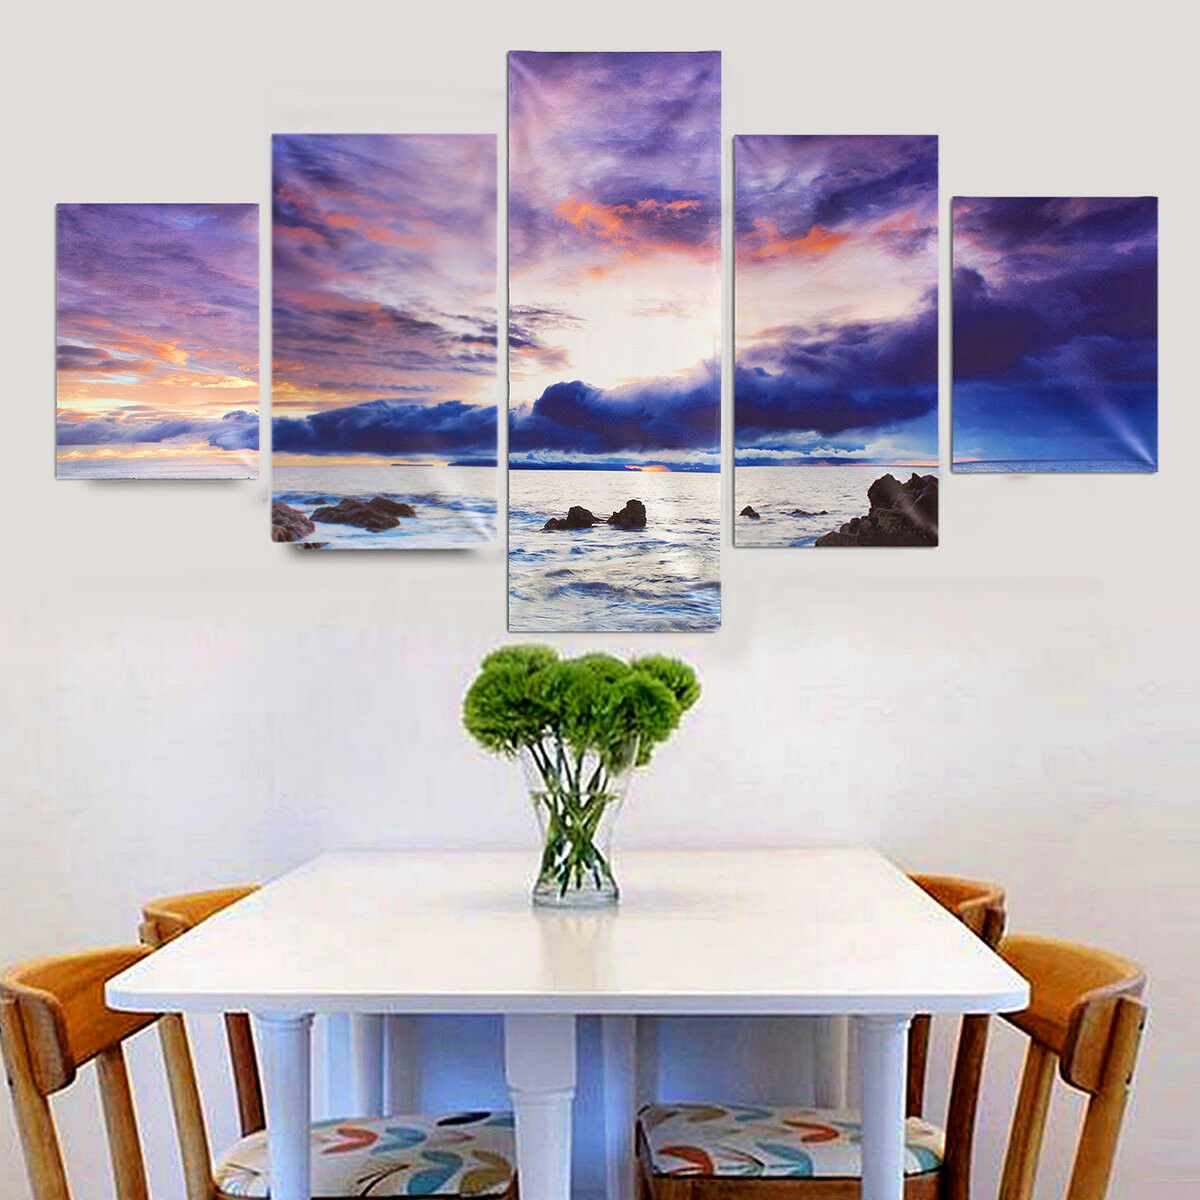 Large Canvas Huge Modern Wall Art Oil Painting Pic In Home Garden Home Decor Posters Prints Ebay For Blanja